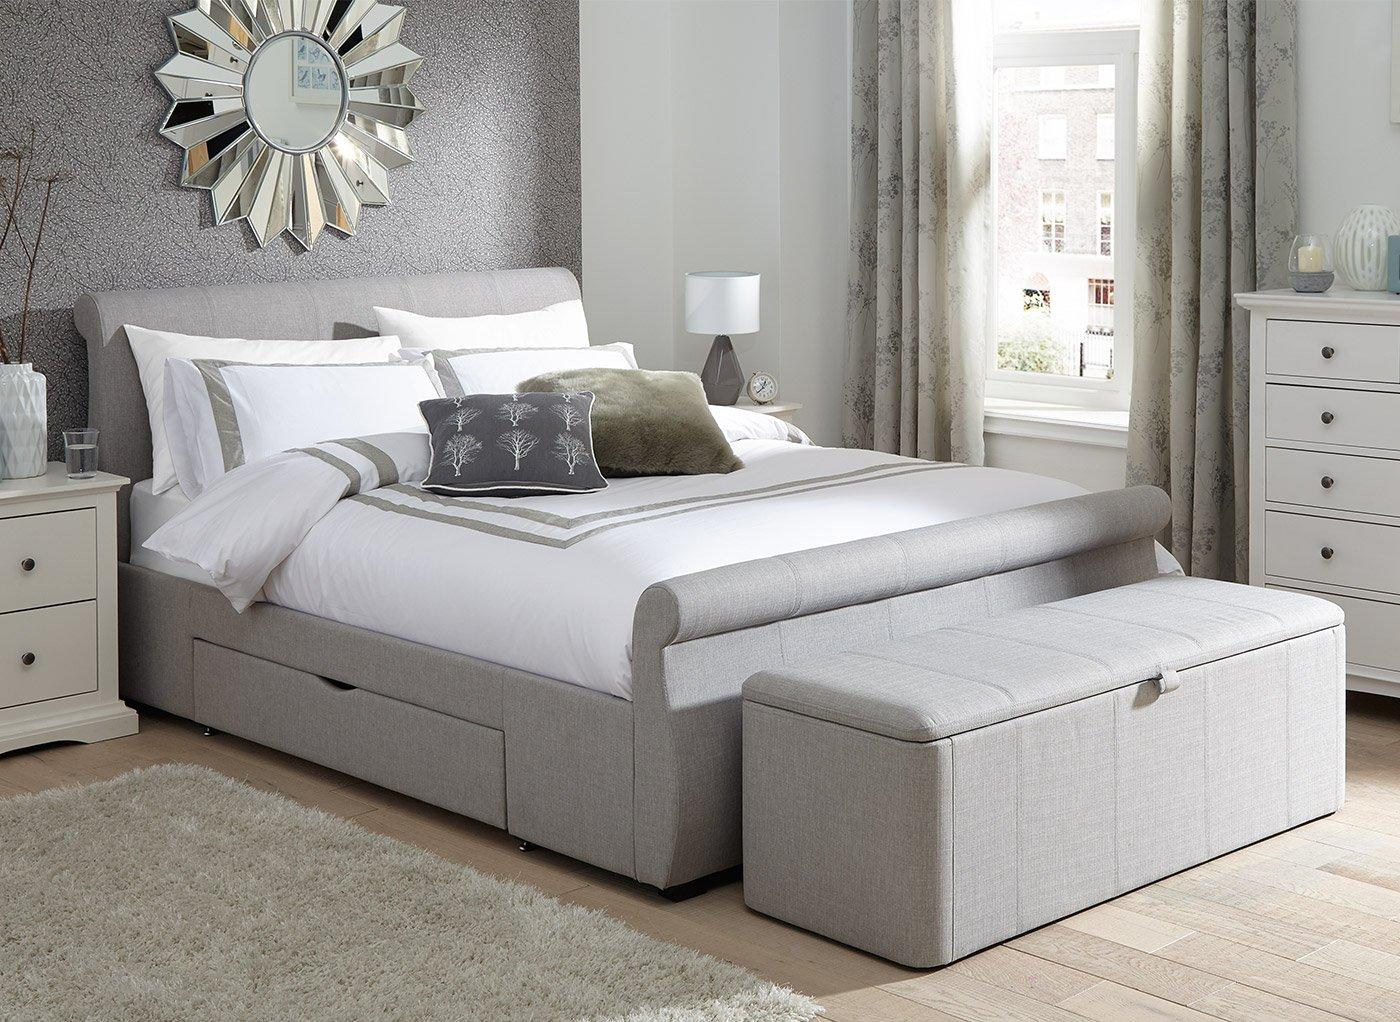 Storage Beds Double King Amp Single Bed With Storage Dreams